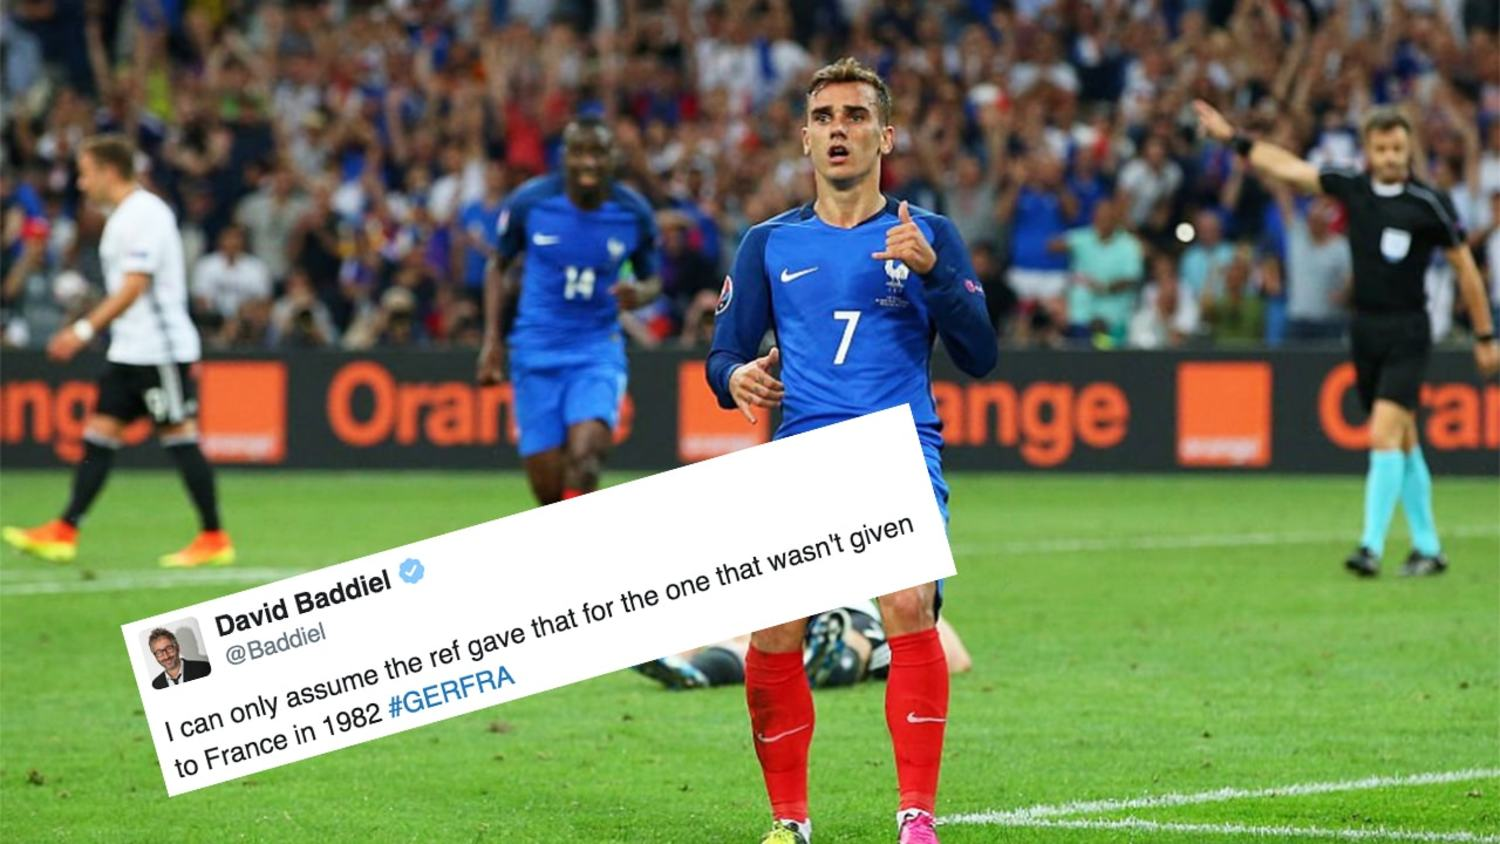 Best Reactions to France Beating Germany to Reach Euro 2016 Final